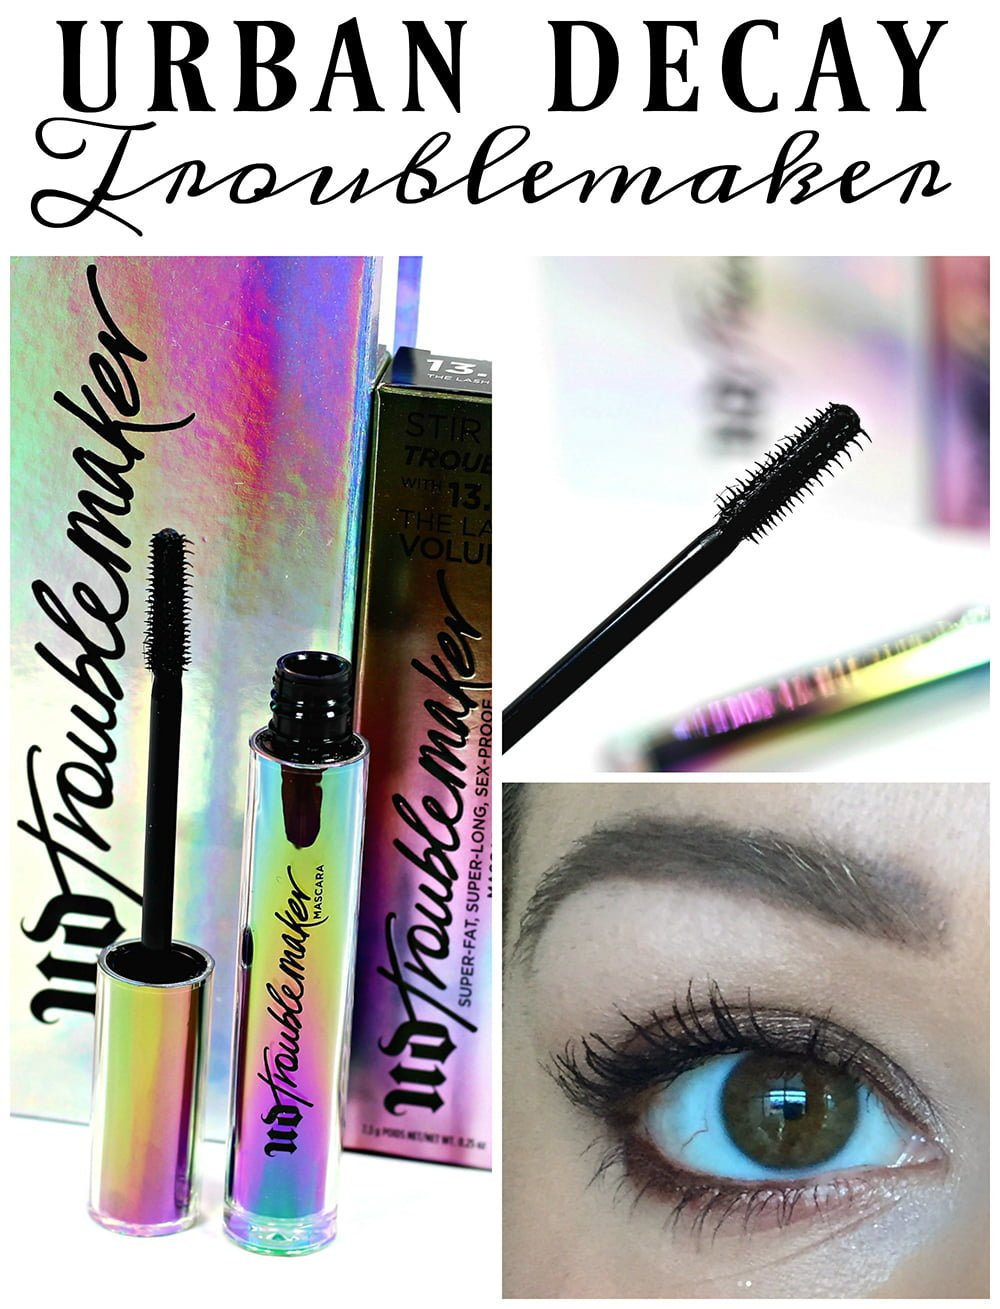 1a65a422a51 Urban Decay Troublemaker Mascara Review & Eye Look